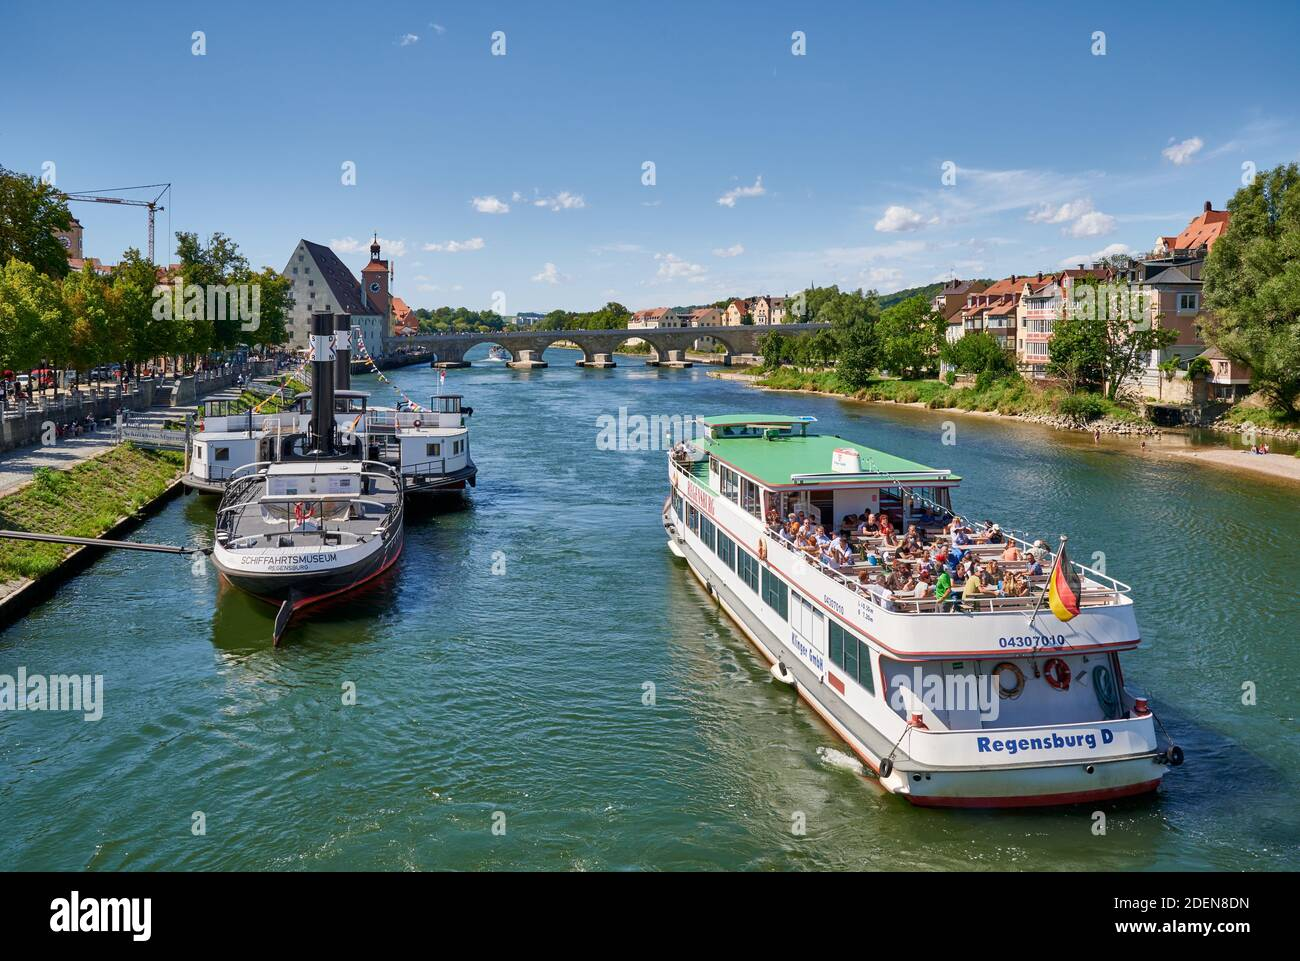 Museumsschiff RUTHOF / ÉRSEKCSANÁD Ship Museum and cruise ship on River Danube, Regensburg , Bavaria, Germany Stock Photo